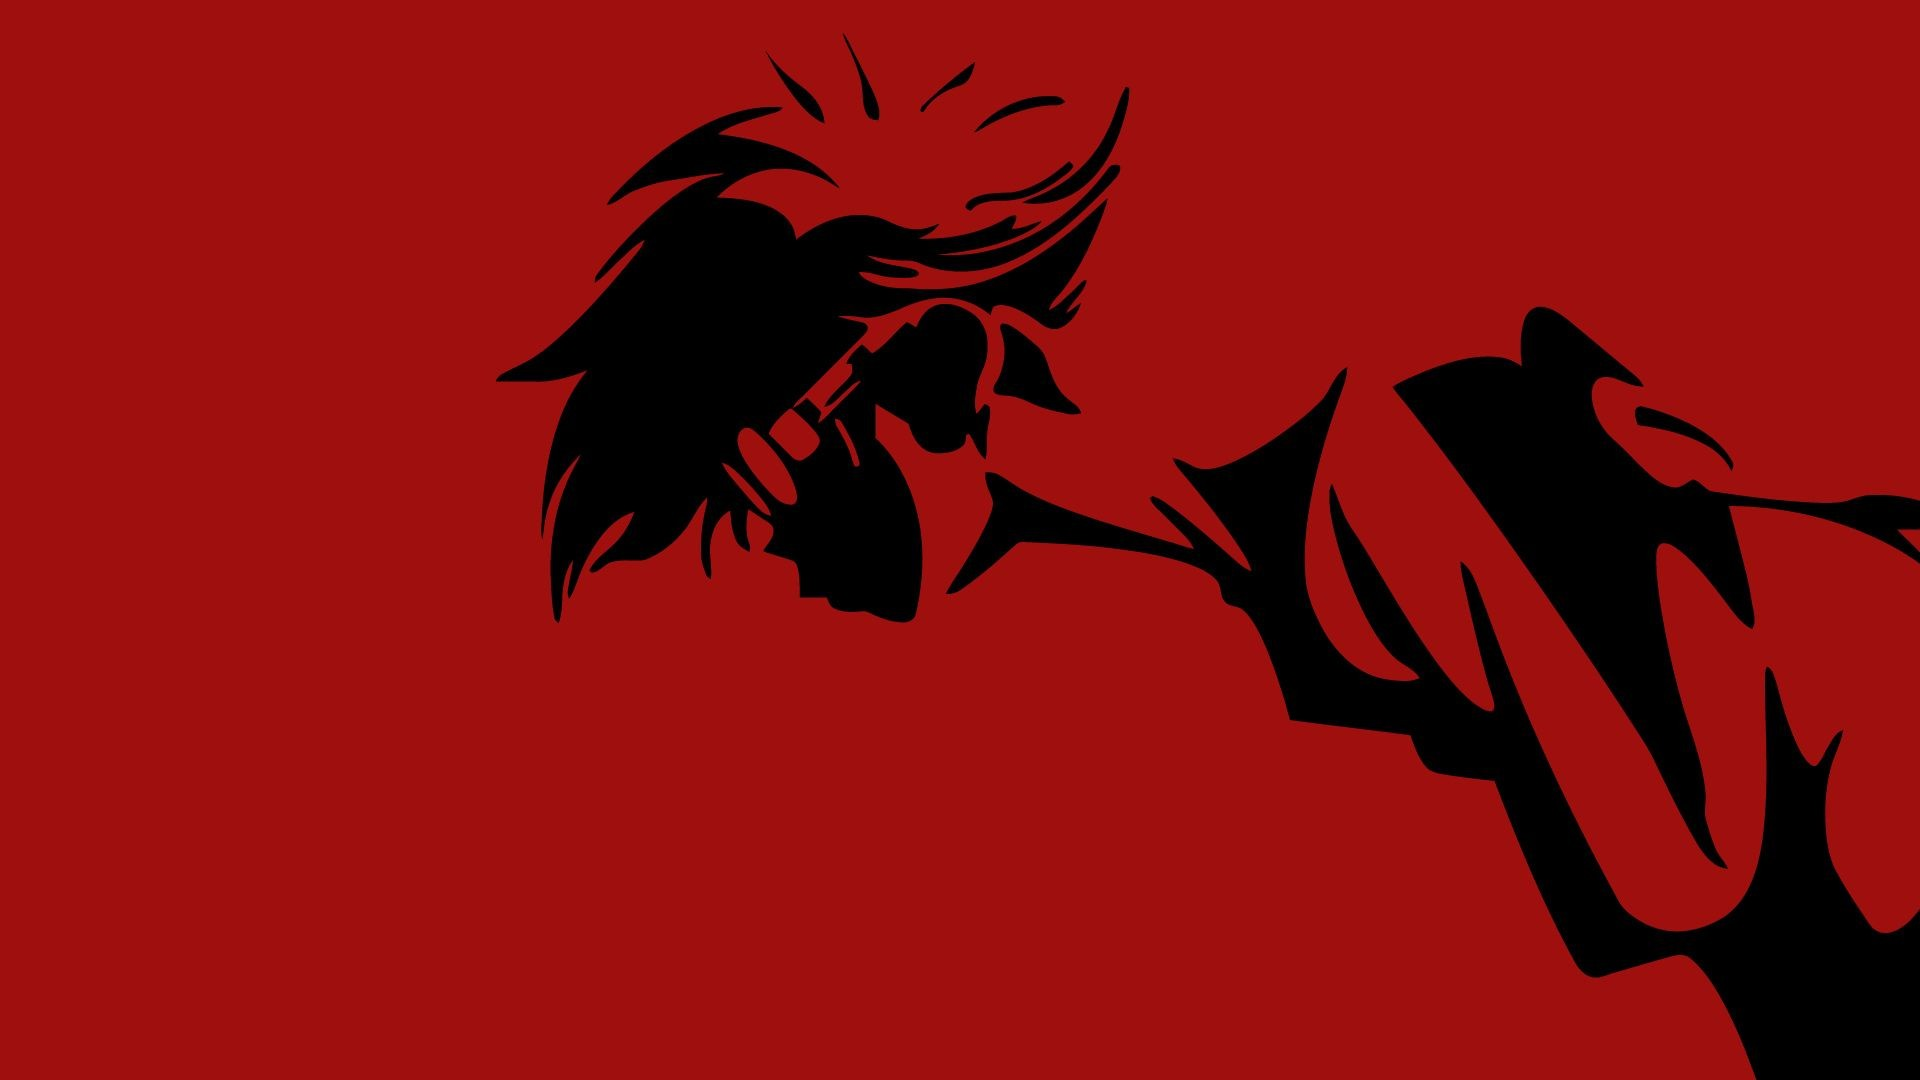 cowboy bebop animated wallpaper